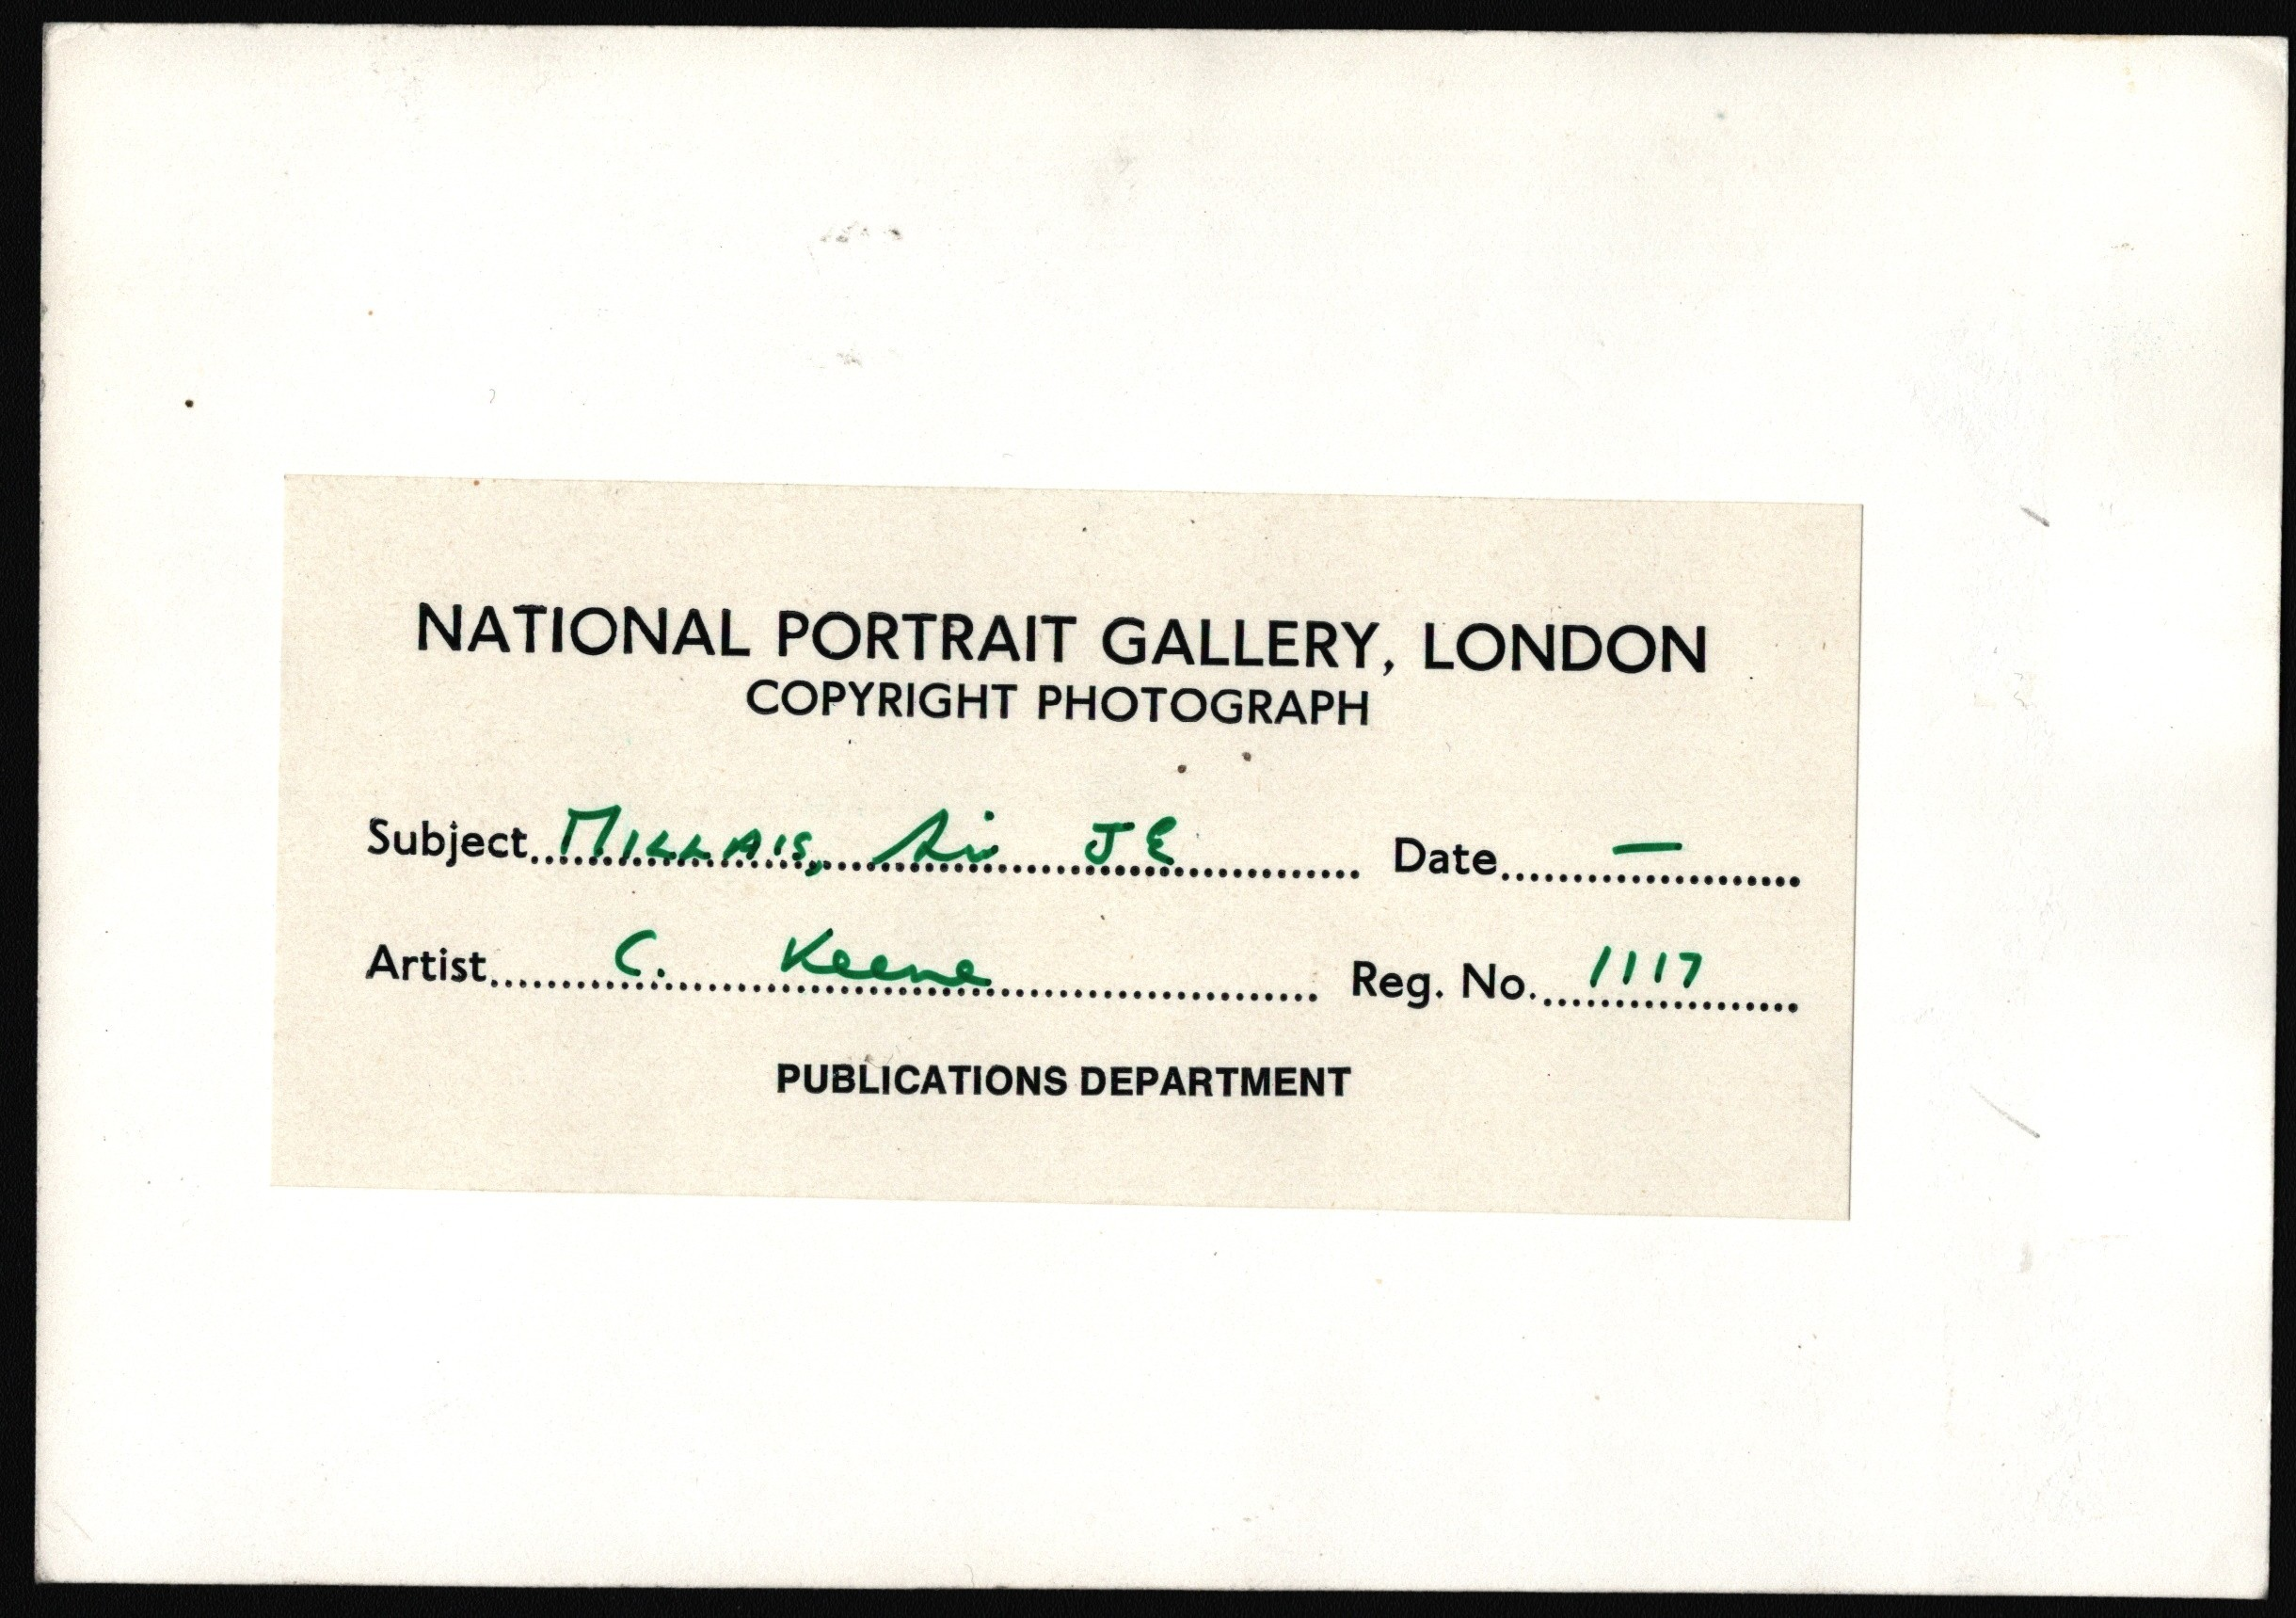 PHOTOGRAPH OF J.E. MILLAIS PICTURE FOR NATIONAL PORTRAIT GALLERY LONDON - Image 2 of 2